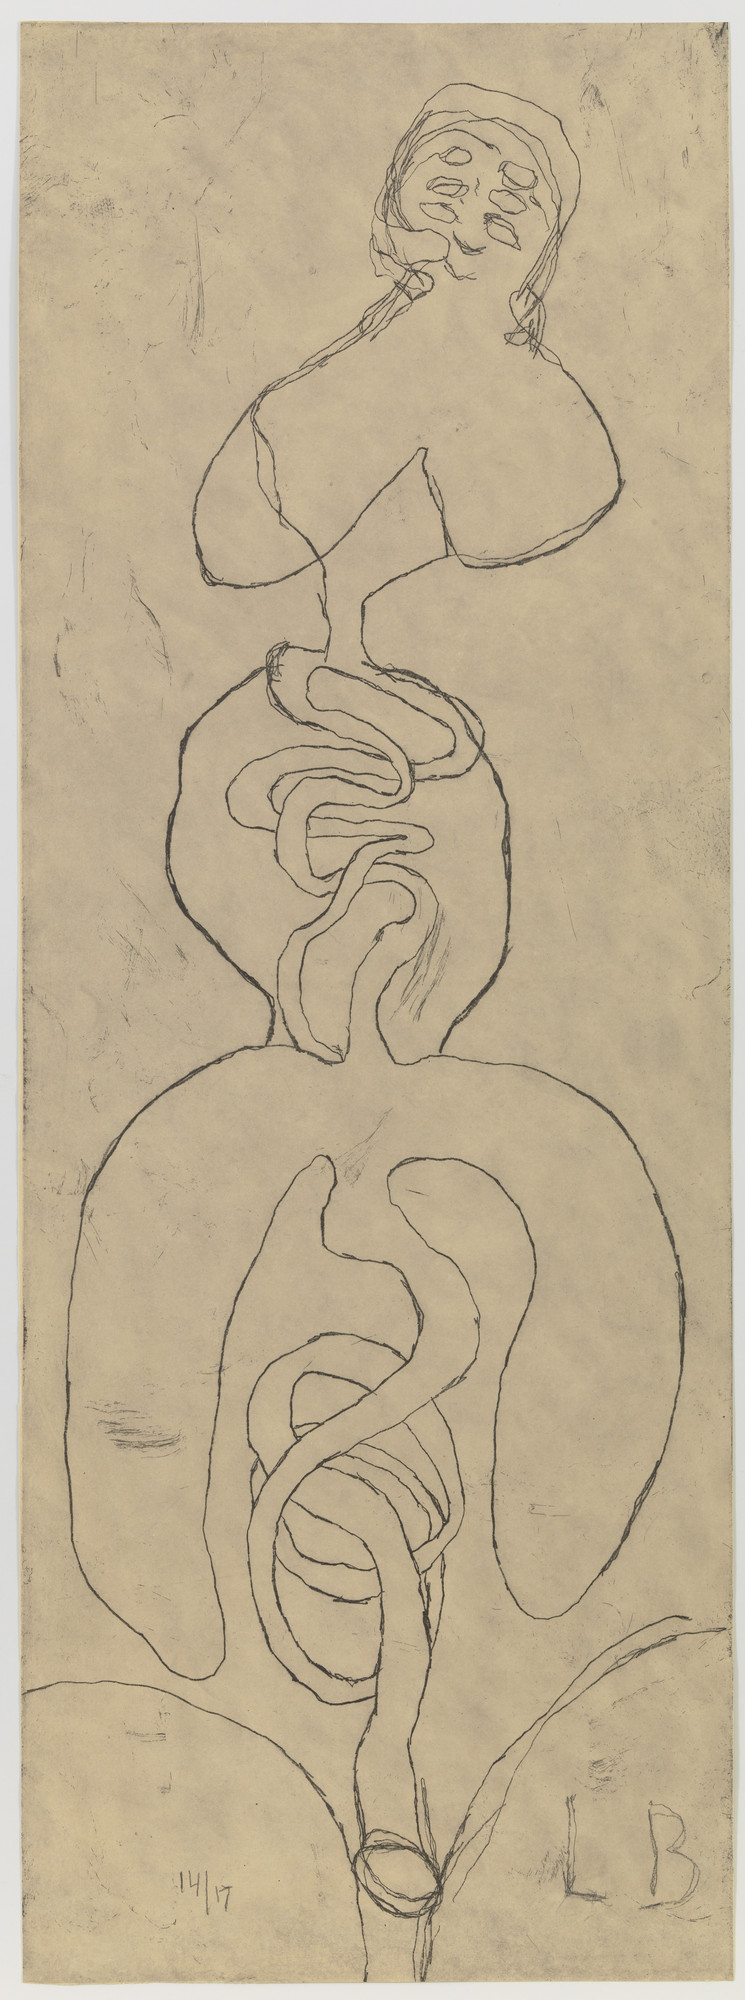 Louise Bourgeois. Just Like Me. 2007